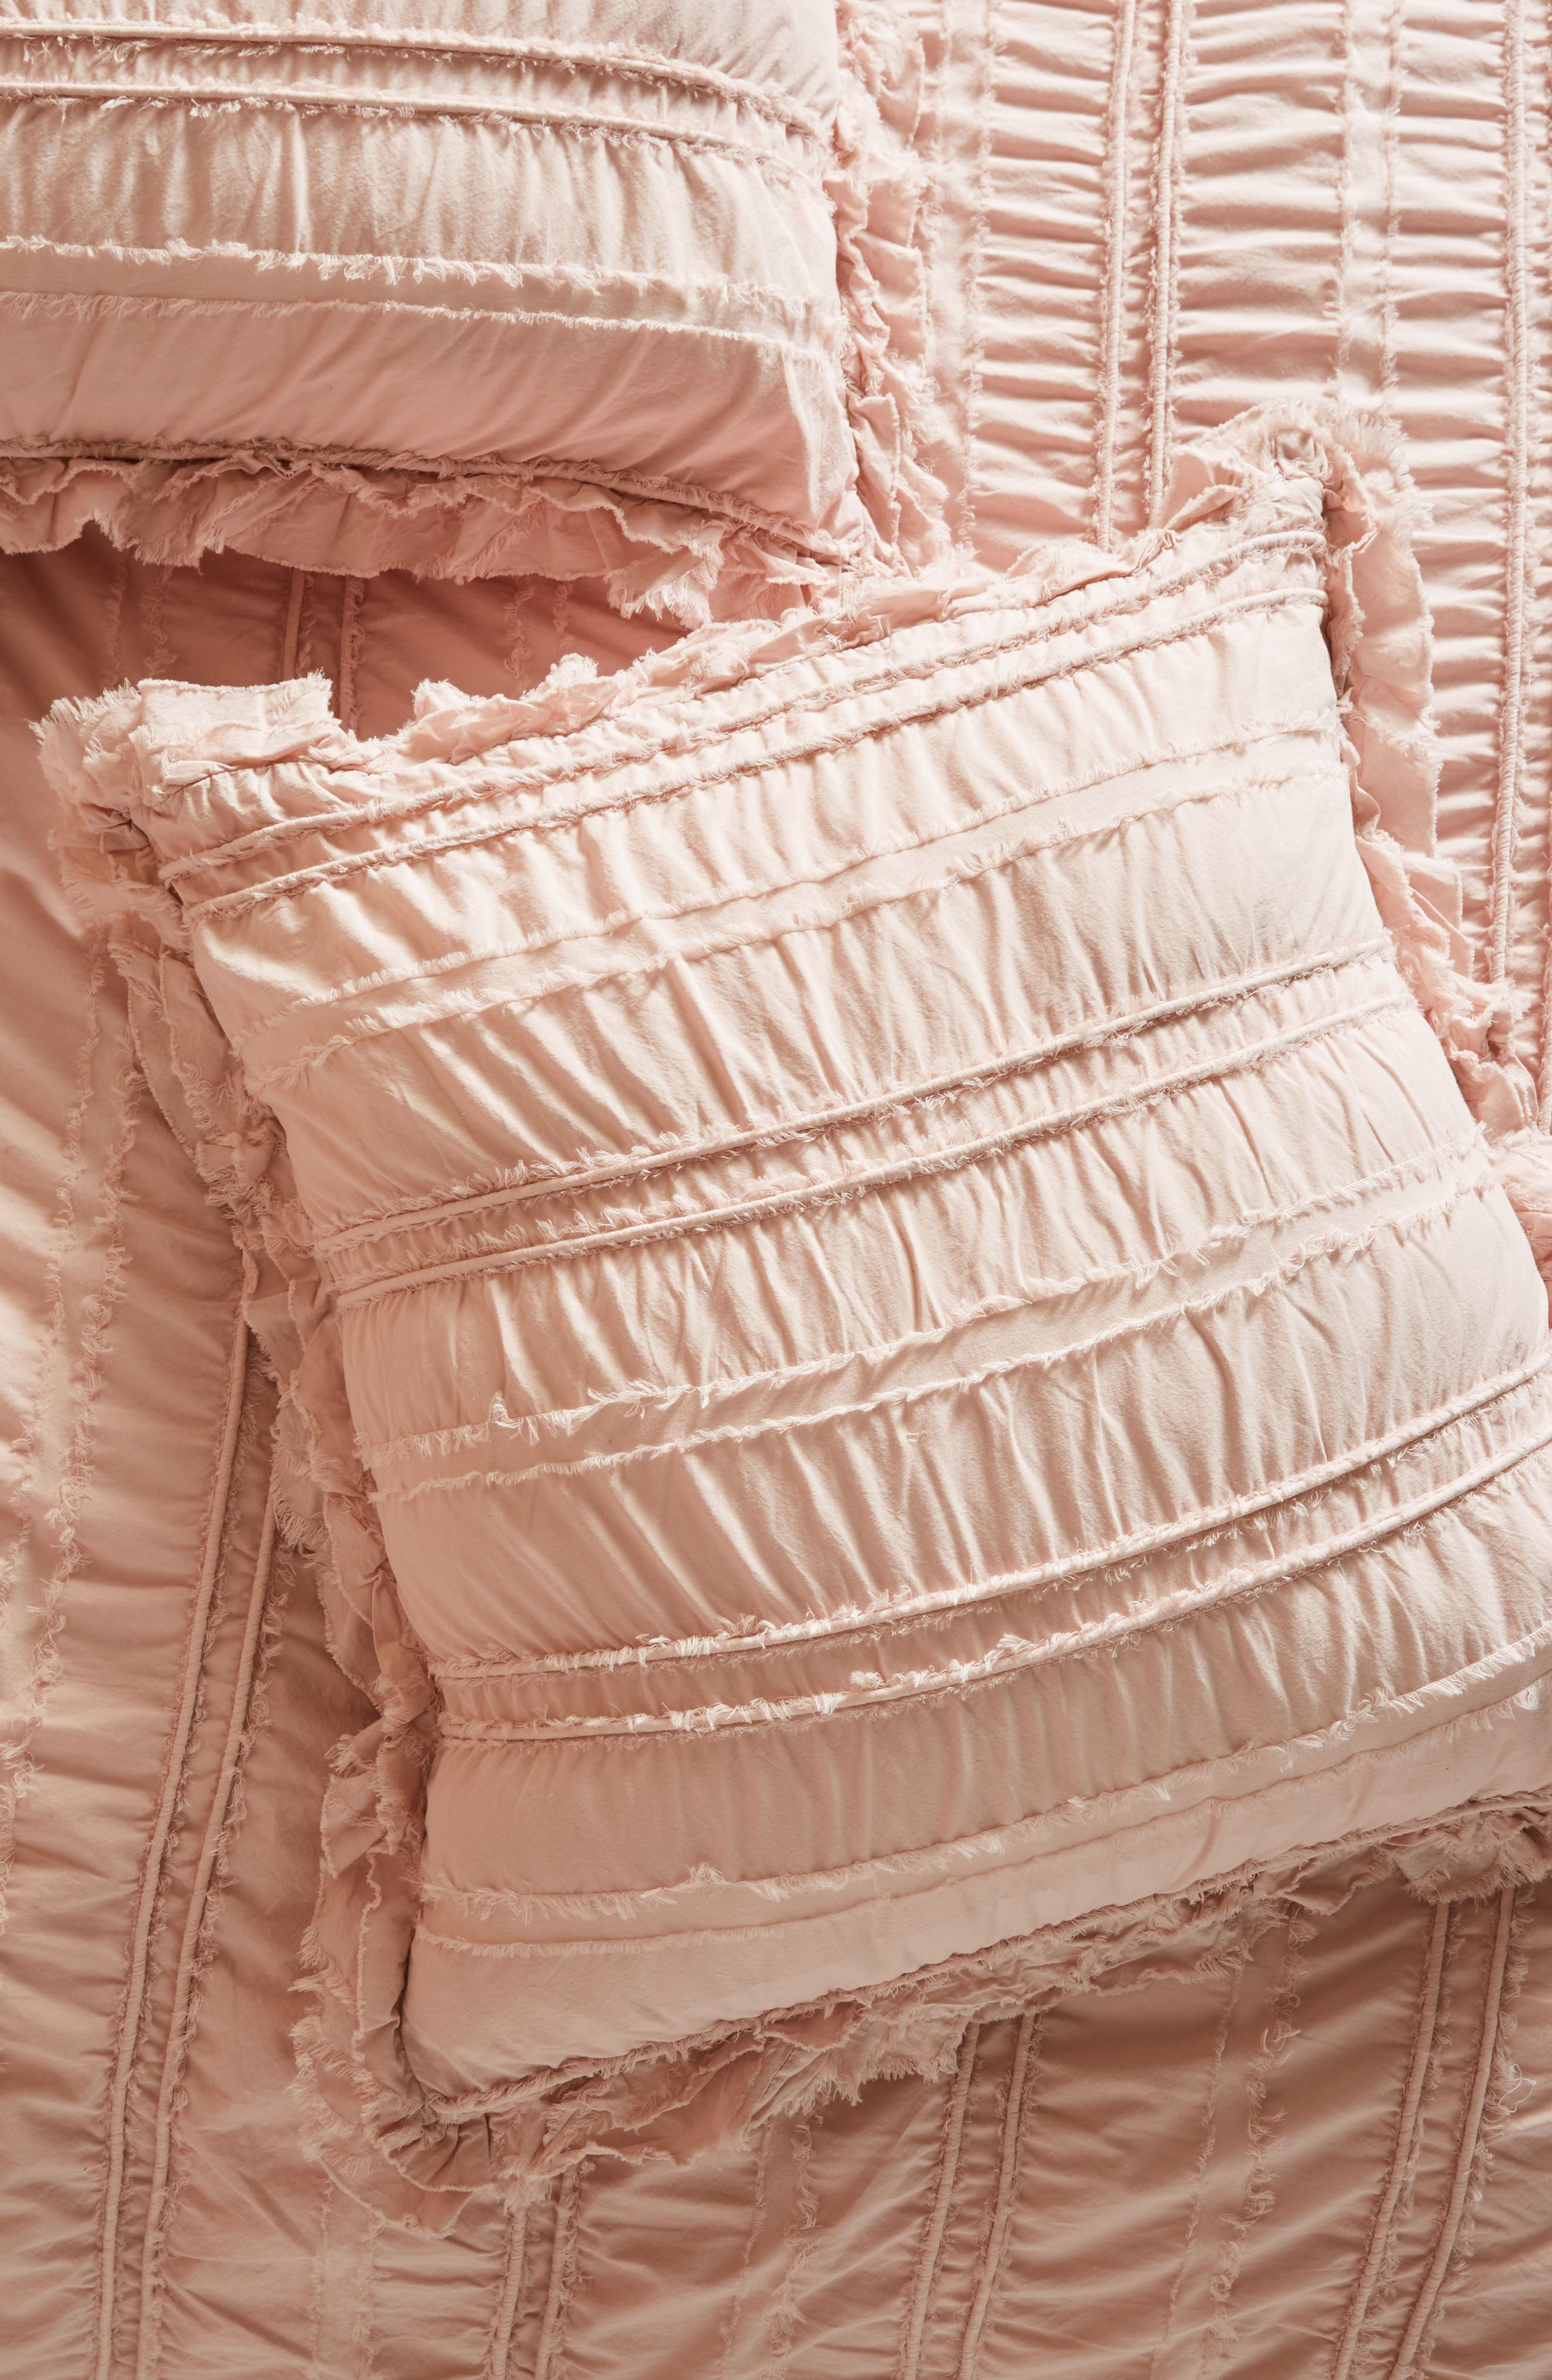 Corded Euro Sham,                         Main,                         color, Blush Peach